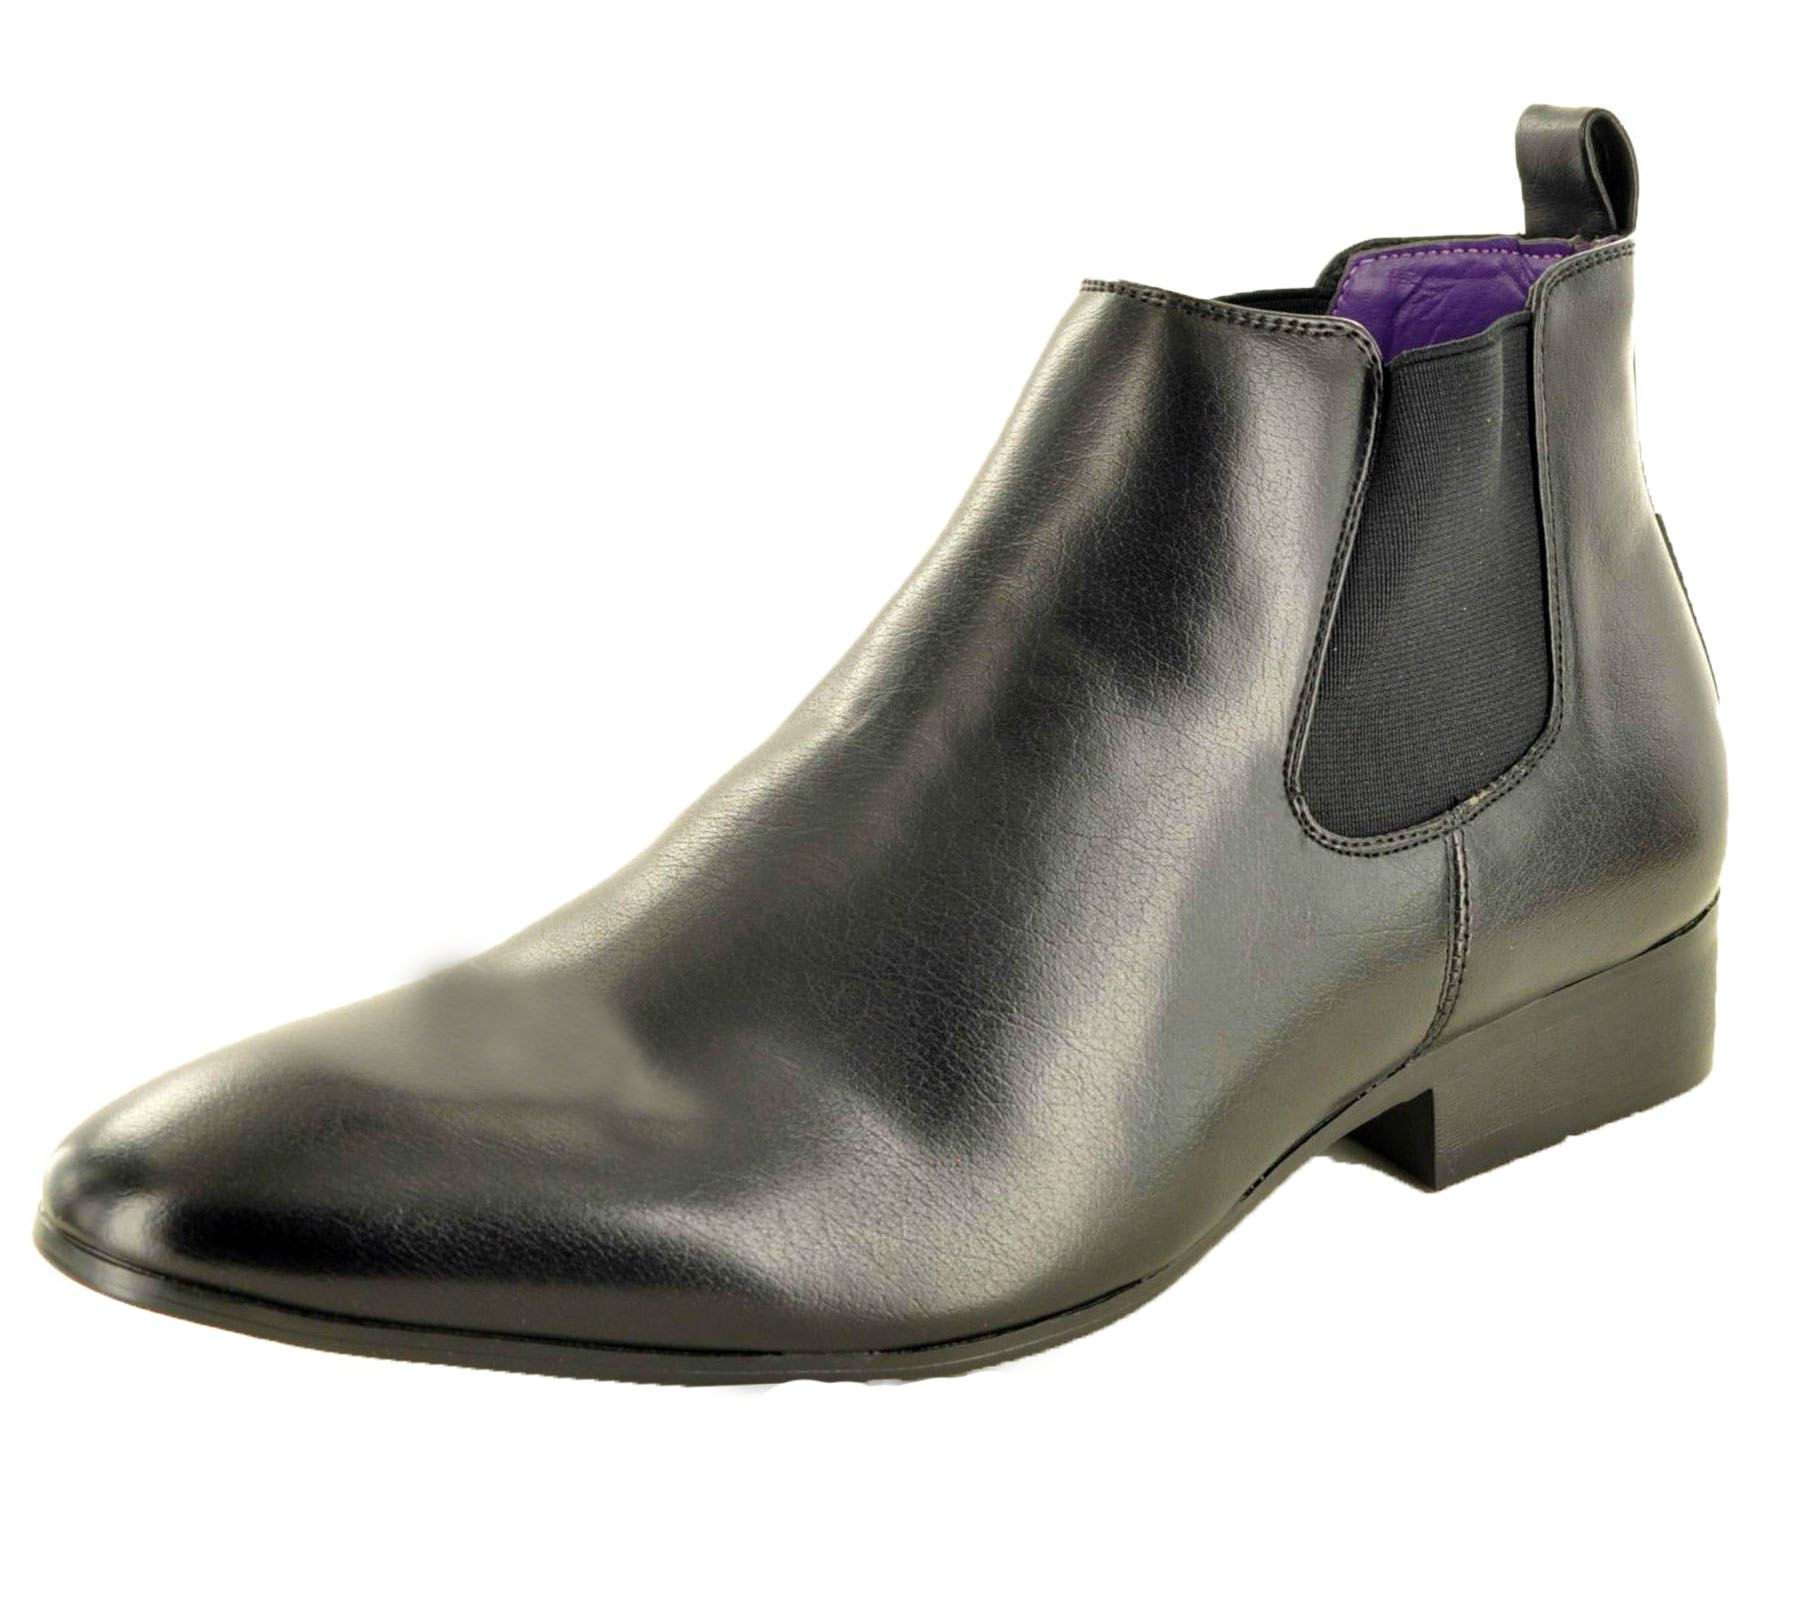 Mens-Chelsea-Boots-High-Top-Gusset-Synthetic-Leather-Shoes thumbnail 4